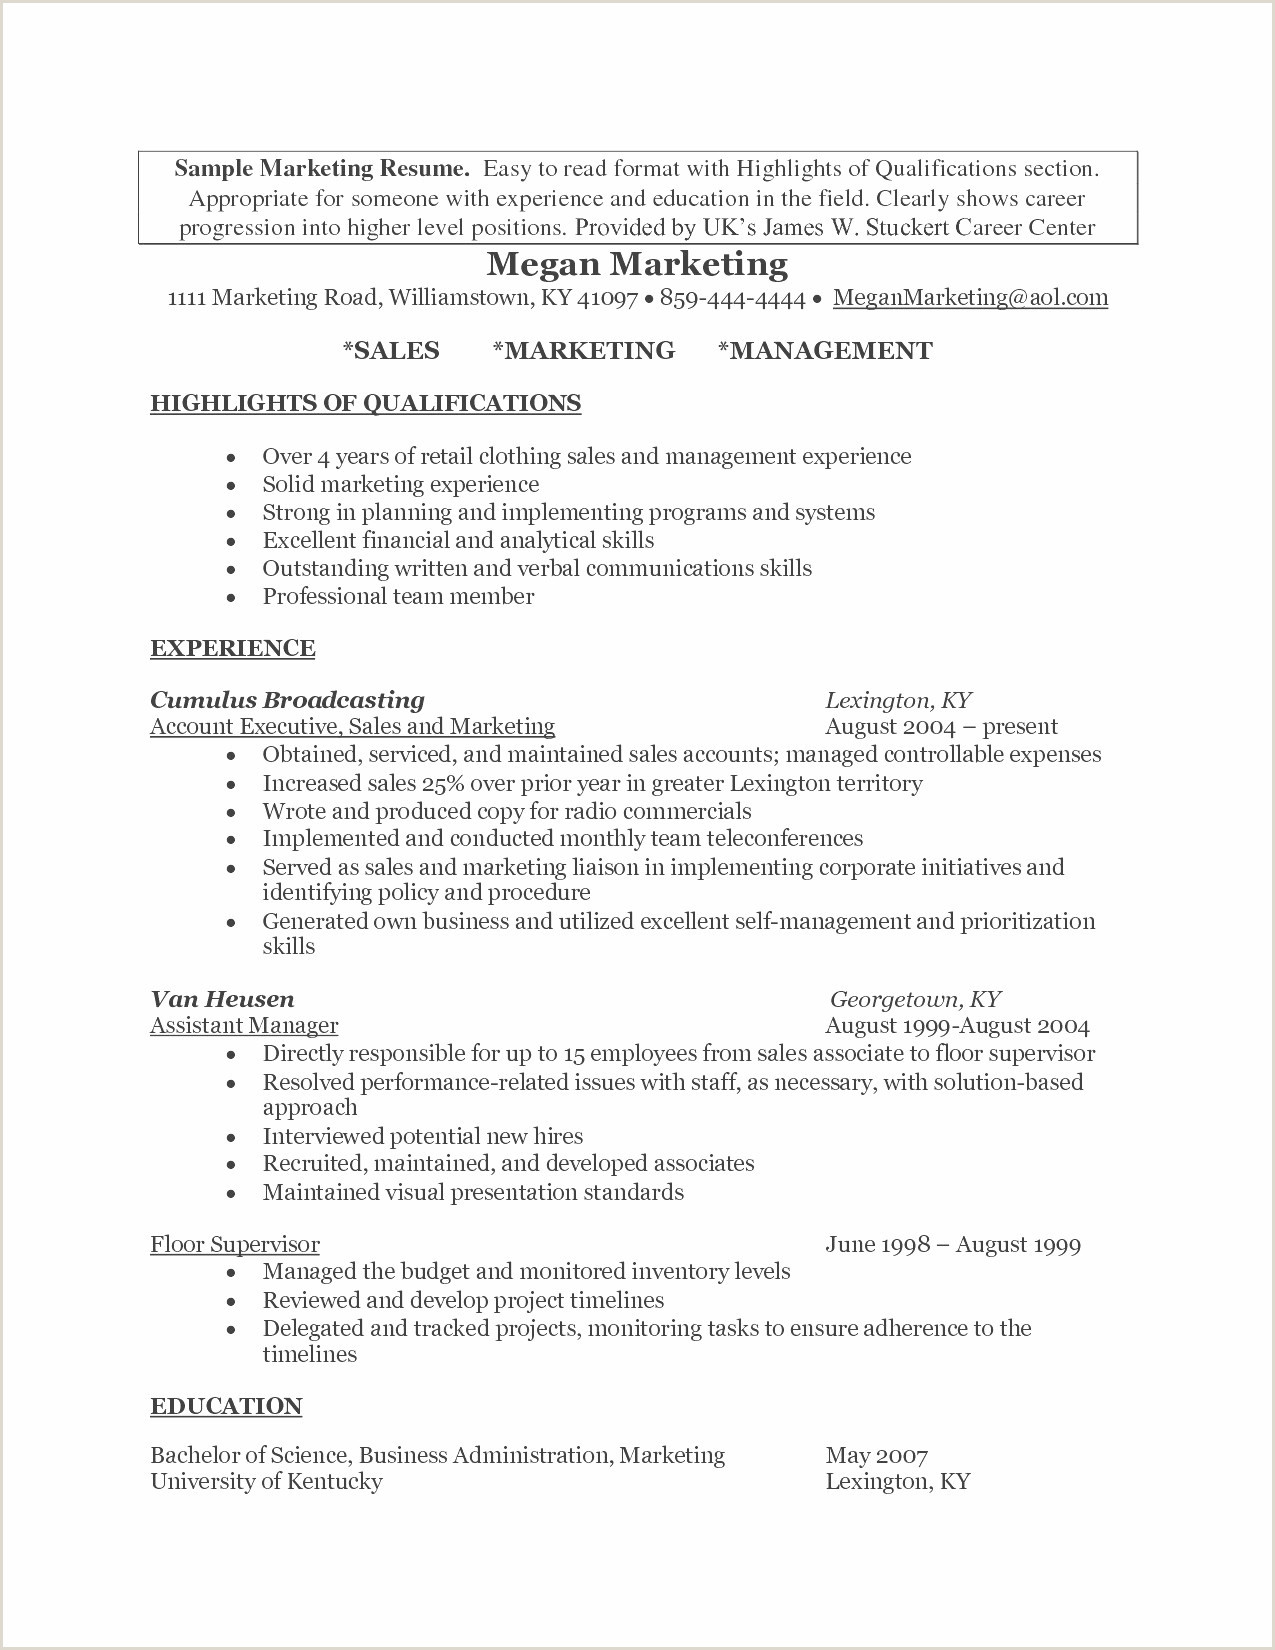 Hr Skills for Resume